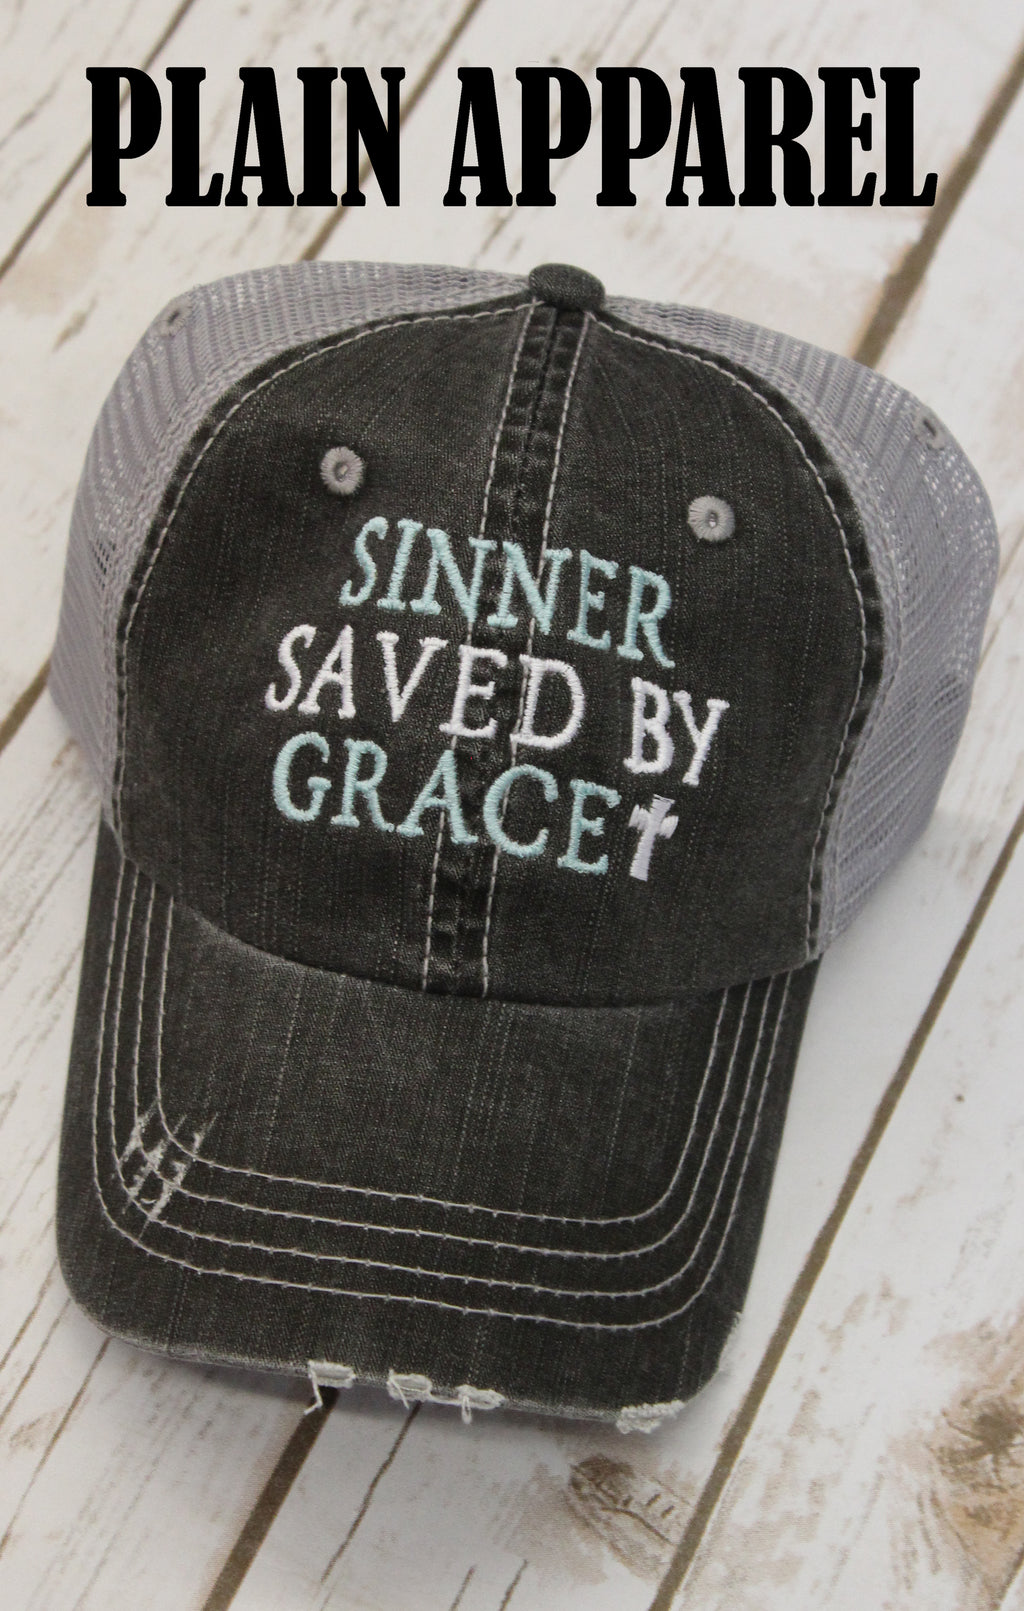 Sinner Saved By Grace Ball Cap